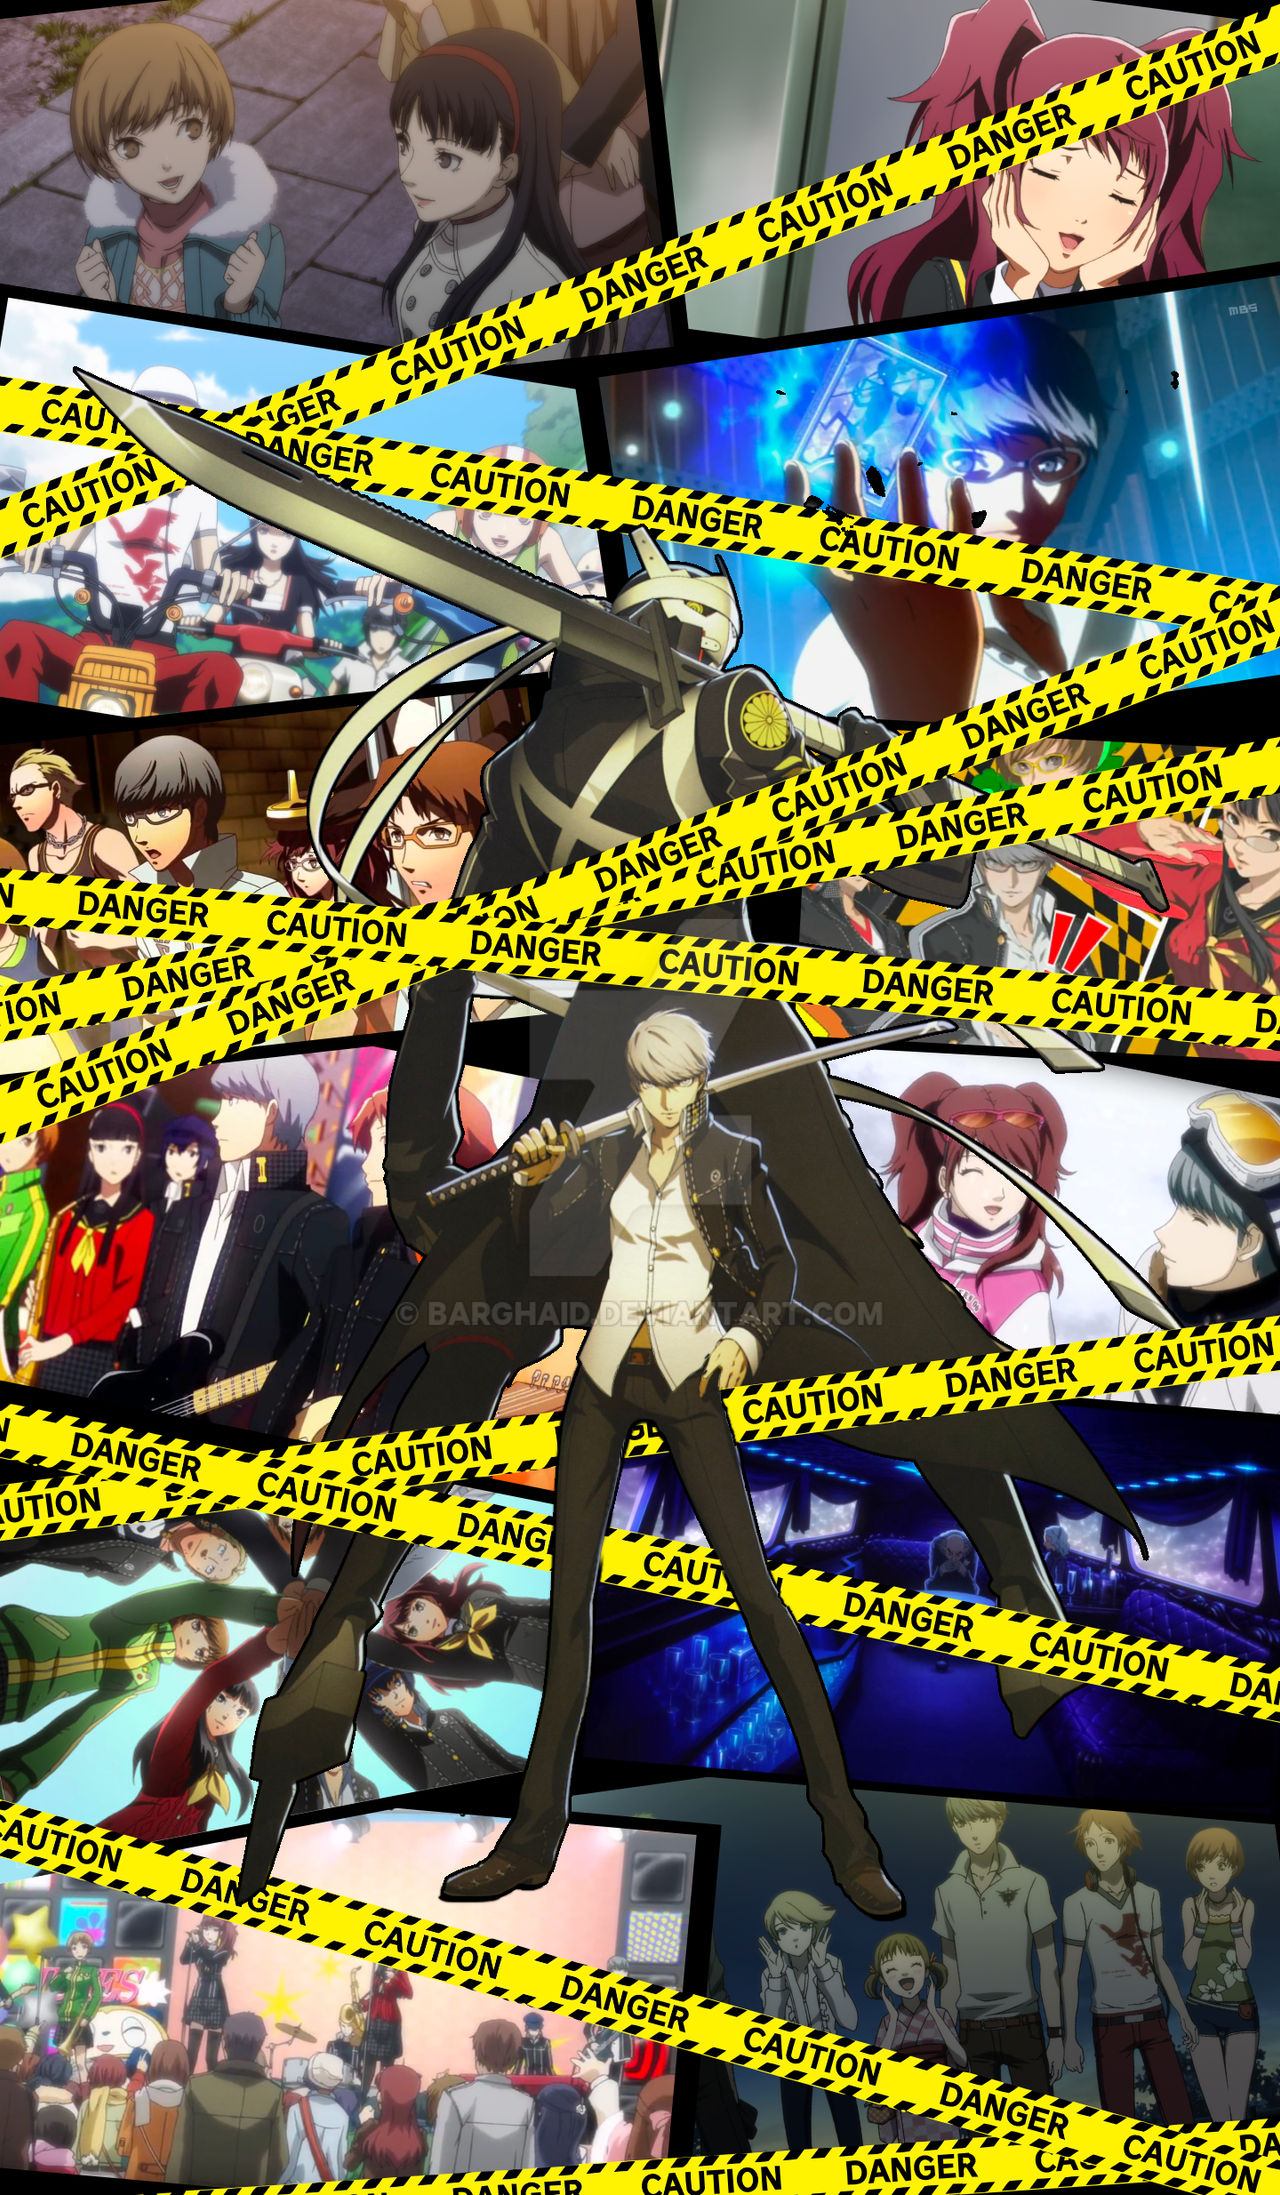 Persona 4 Golden Wallpaper Smartphone By Barghaid On